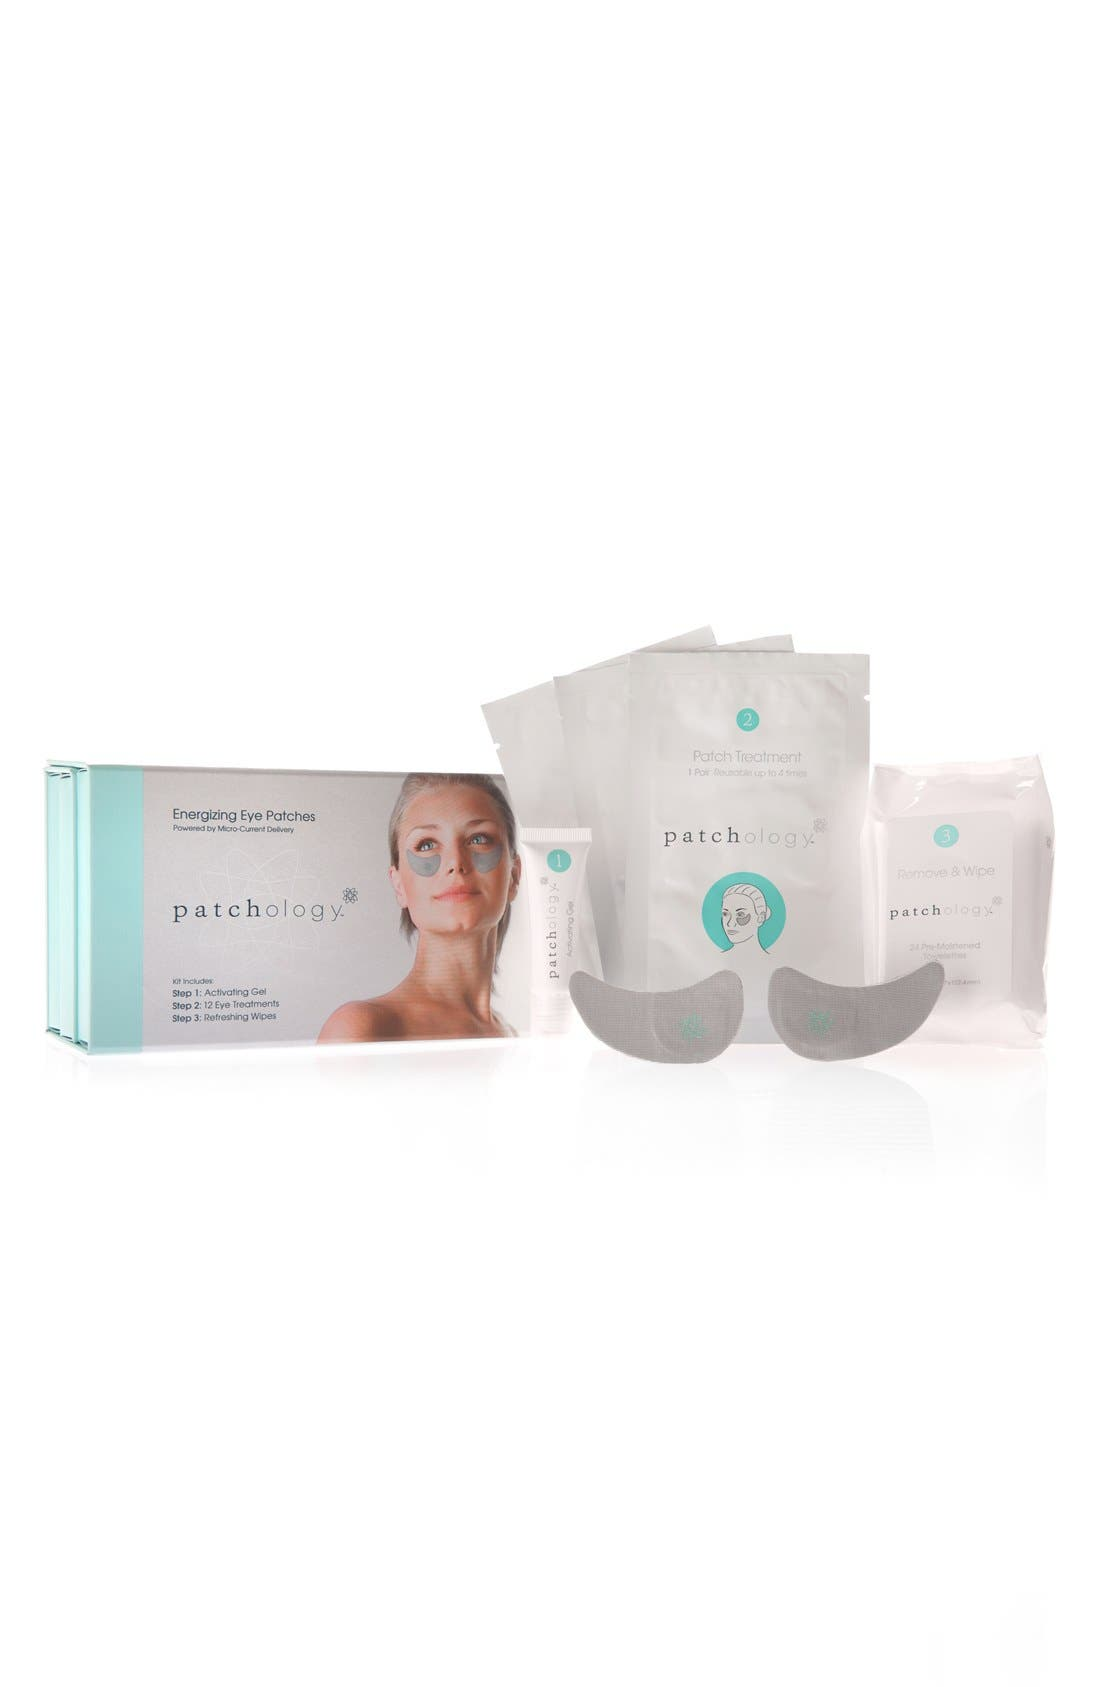 patchology Energizing Eye Patch Kit